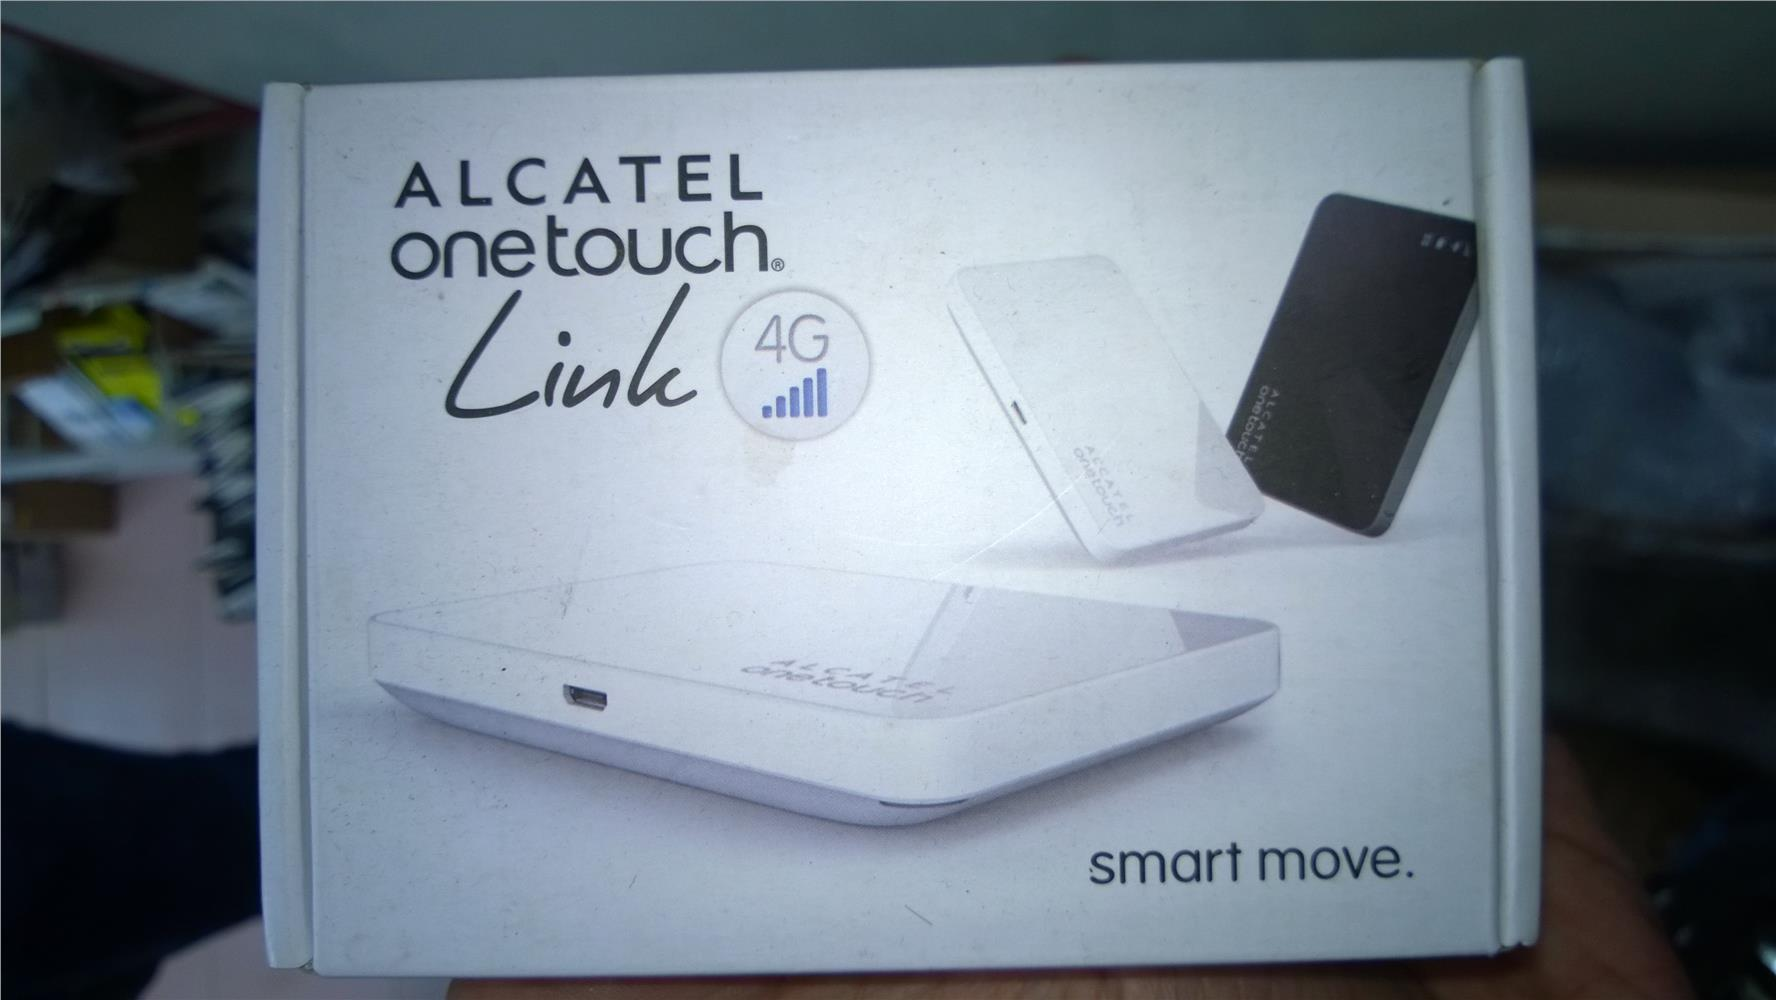 Alcatel One Touch Link Y858 4G LTE FDD Wifi Router Mobile Hotspot Mode